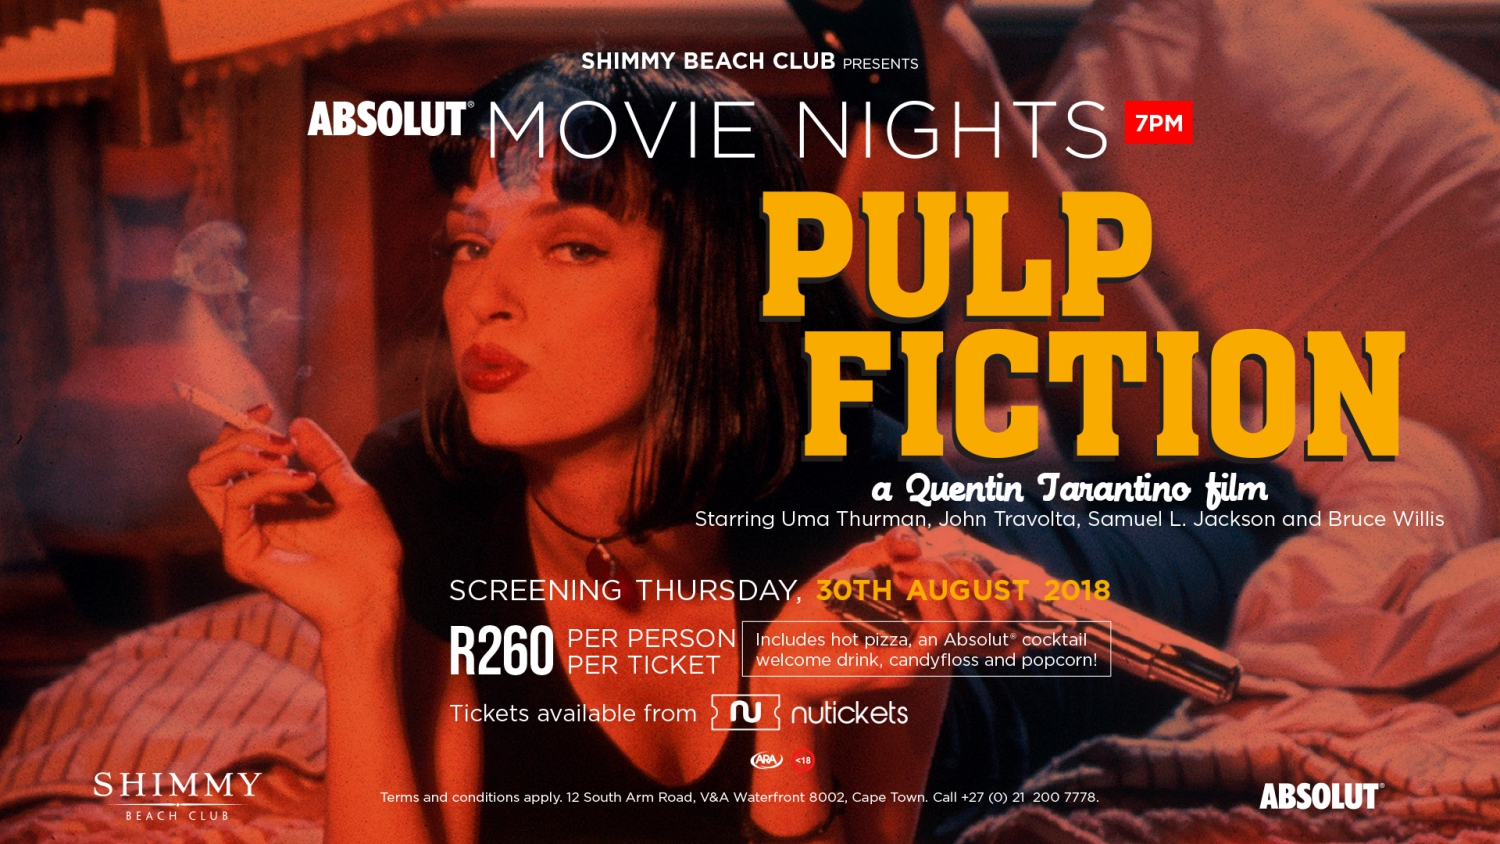 Absolut Movie Nights: Pulp Fiction